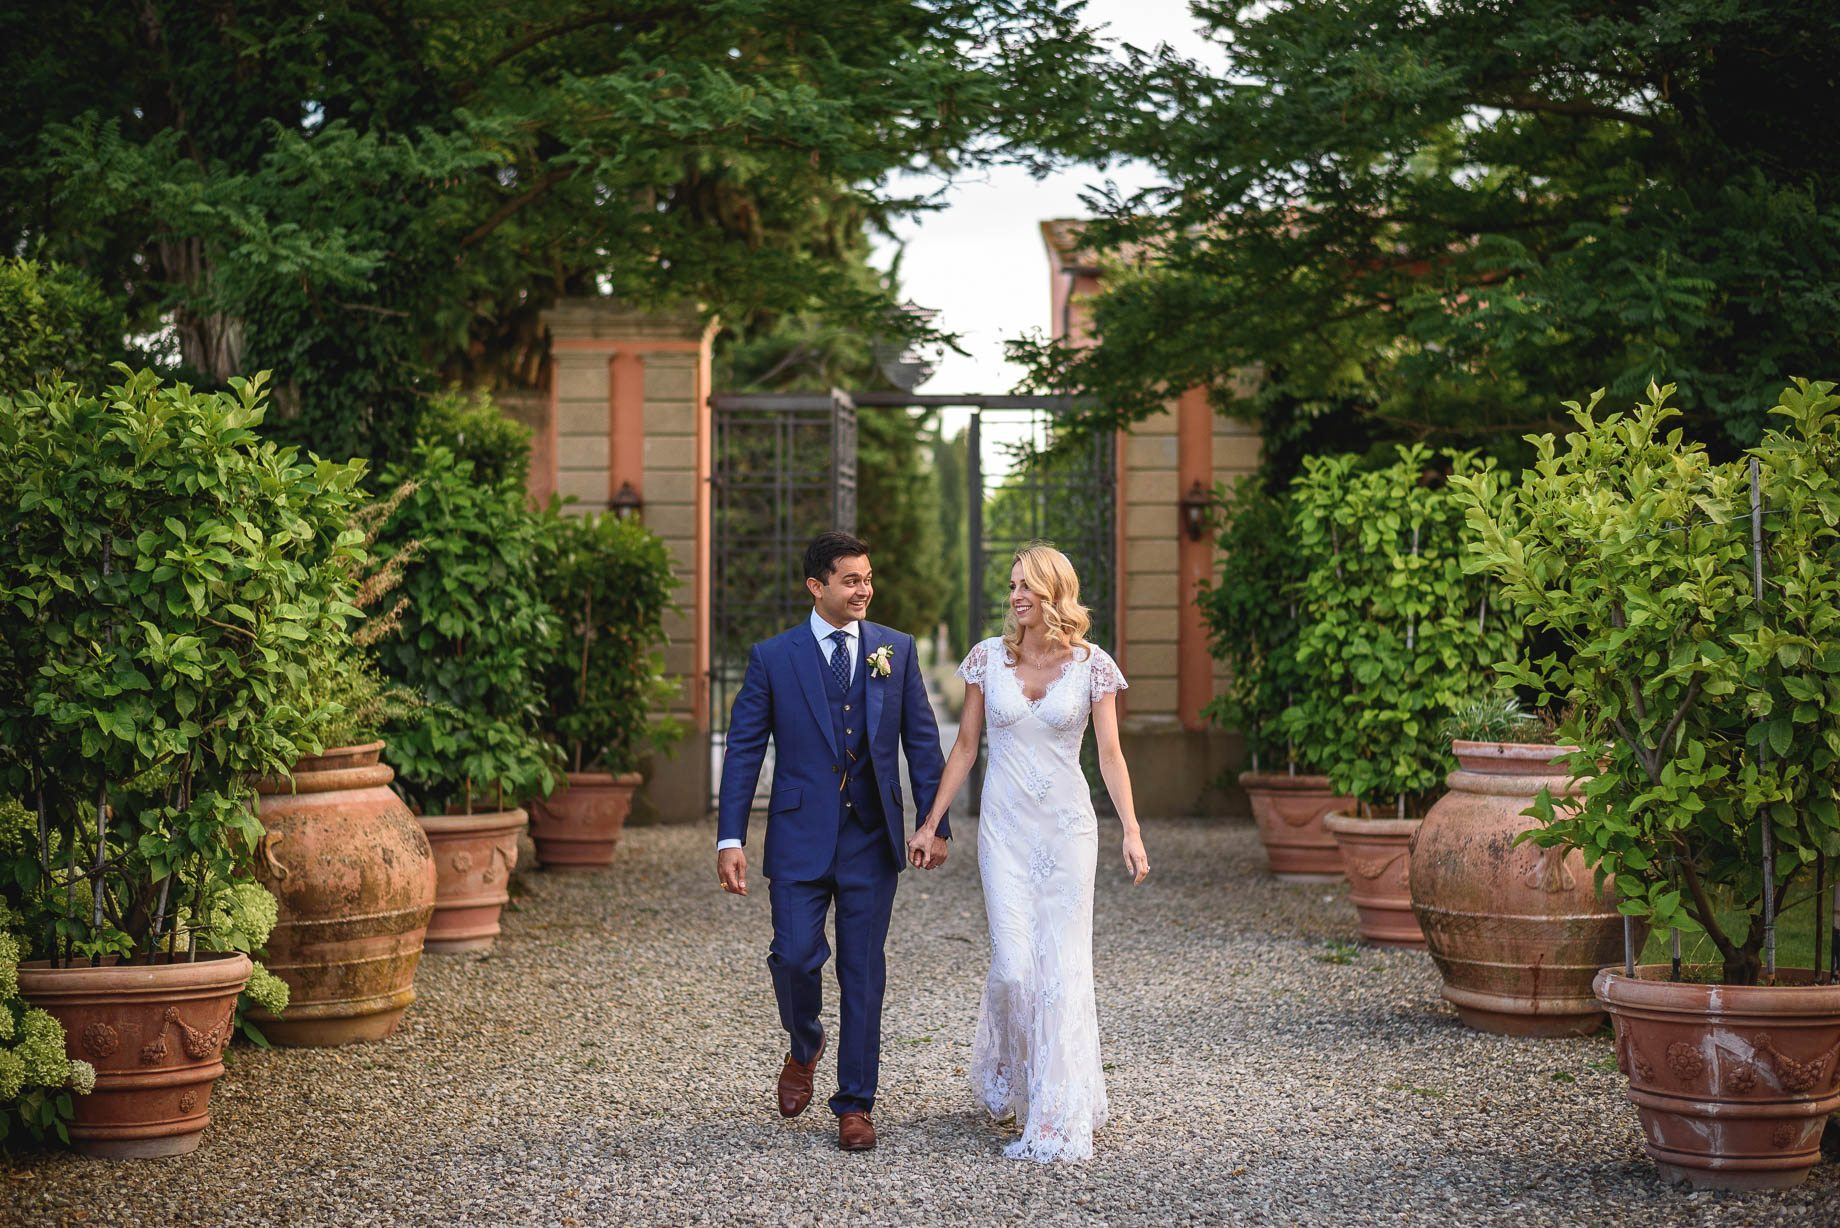 Tuscany wedding photography - Roisin and Moubin - Guy Collier Photography (151 of 251)